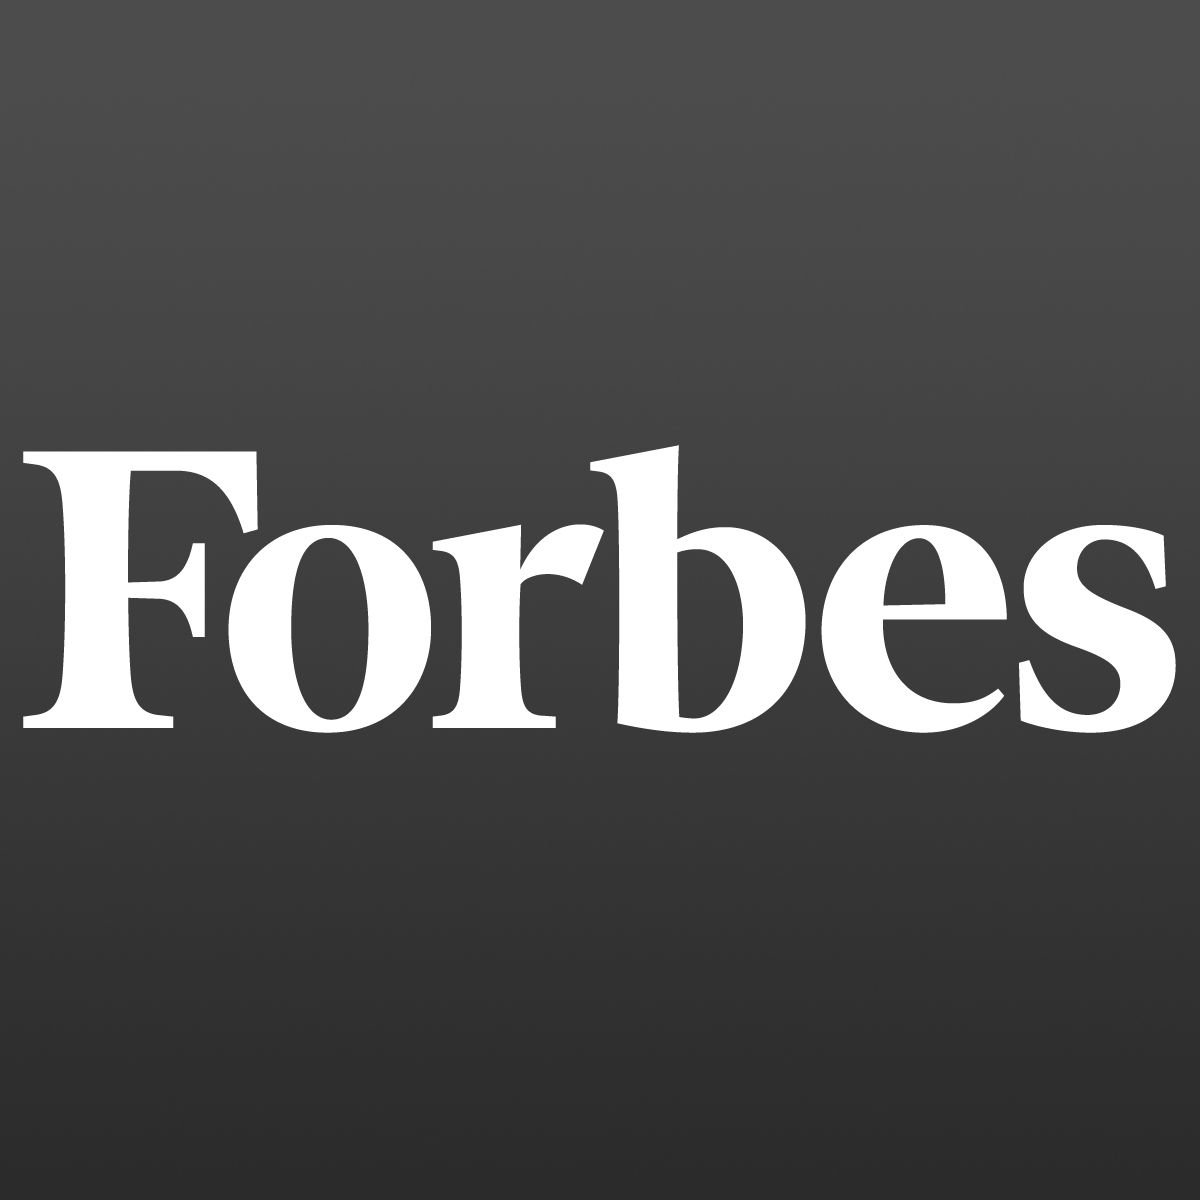 forbe logo In the News